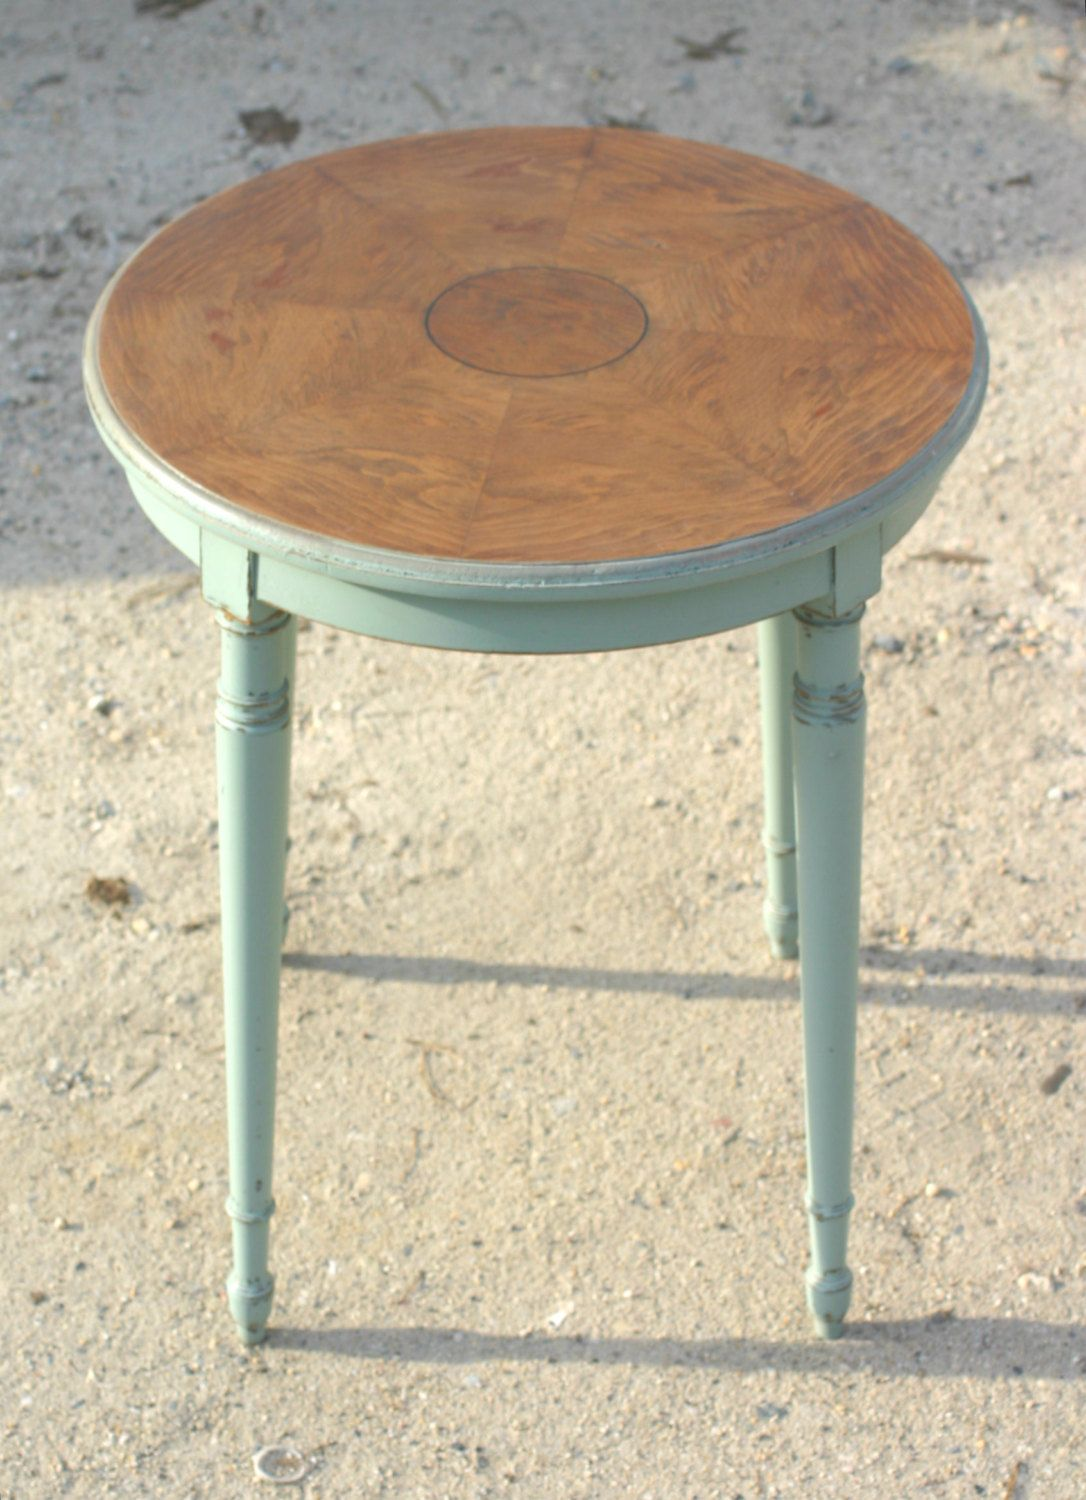 round accent table blue inlaid wood distressed small side sweetiesattic etsy folding kitchen and chairs target metal coffee pub set cream sheesham black stools low patio dining